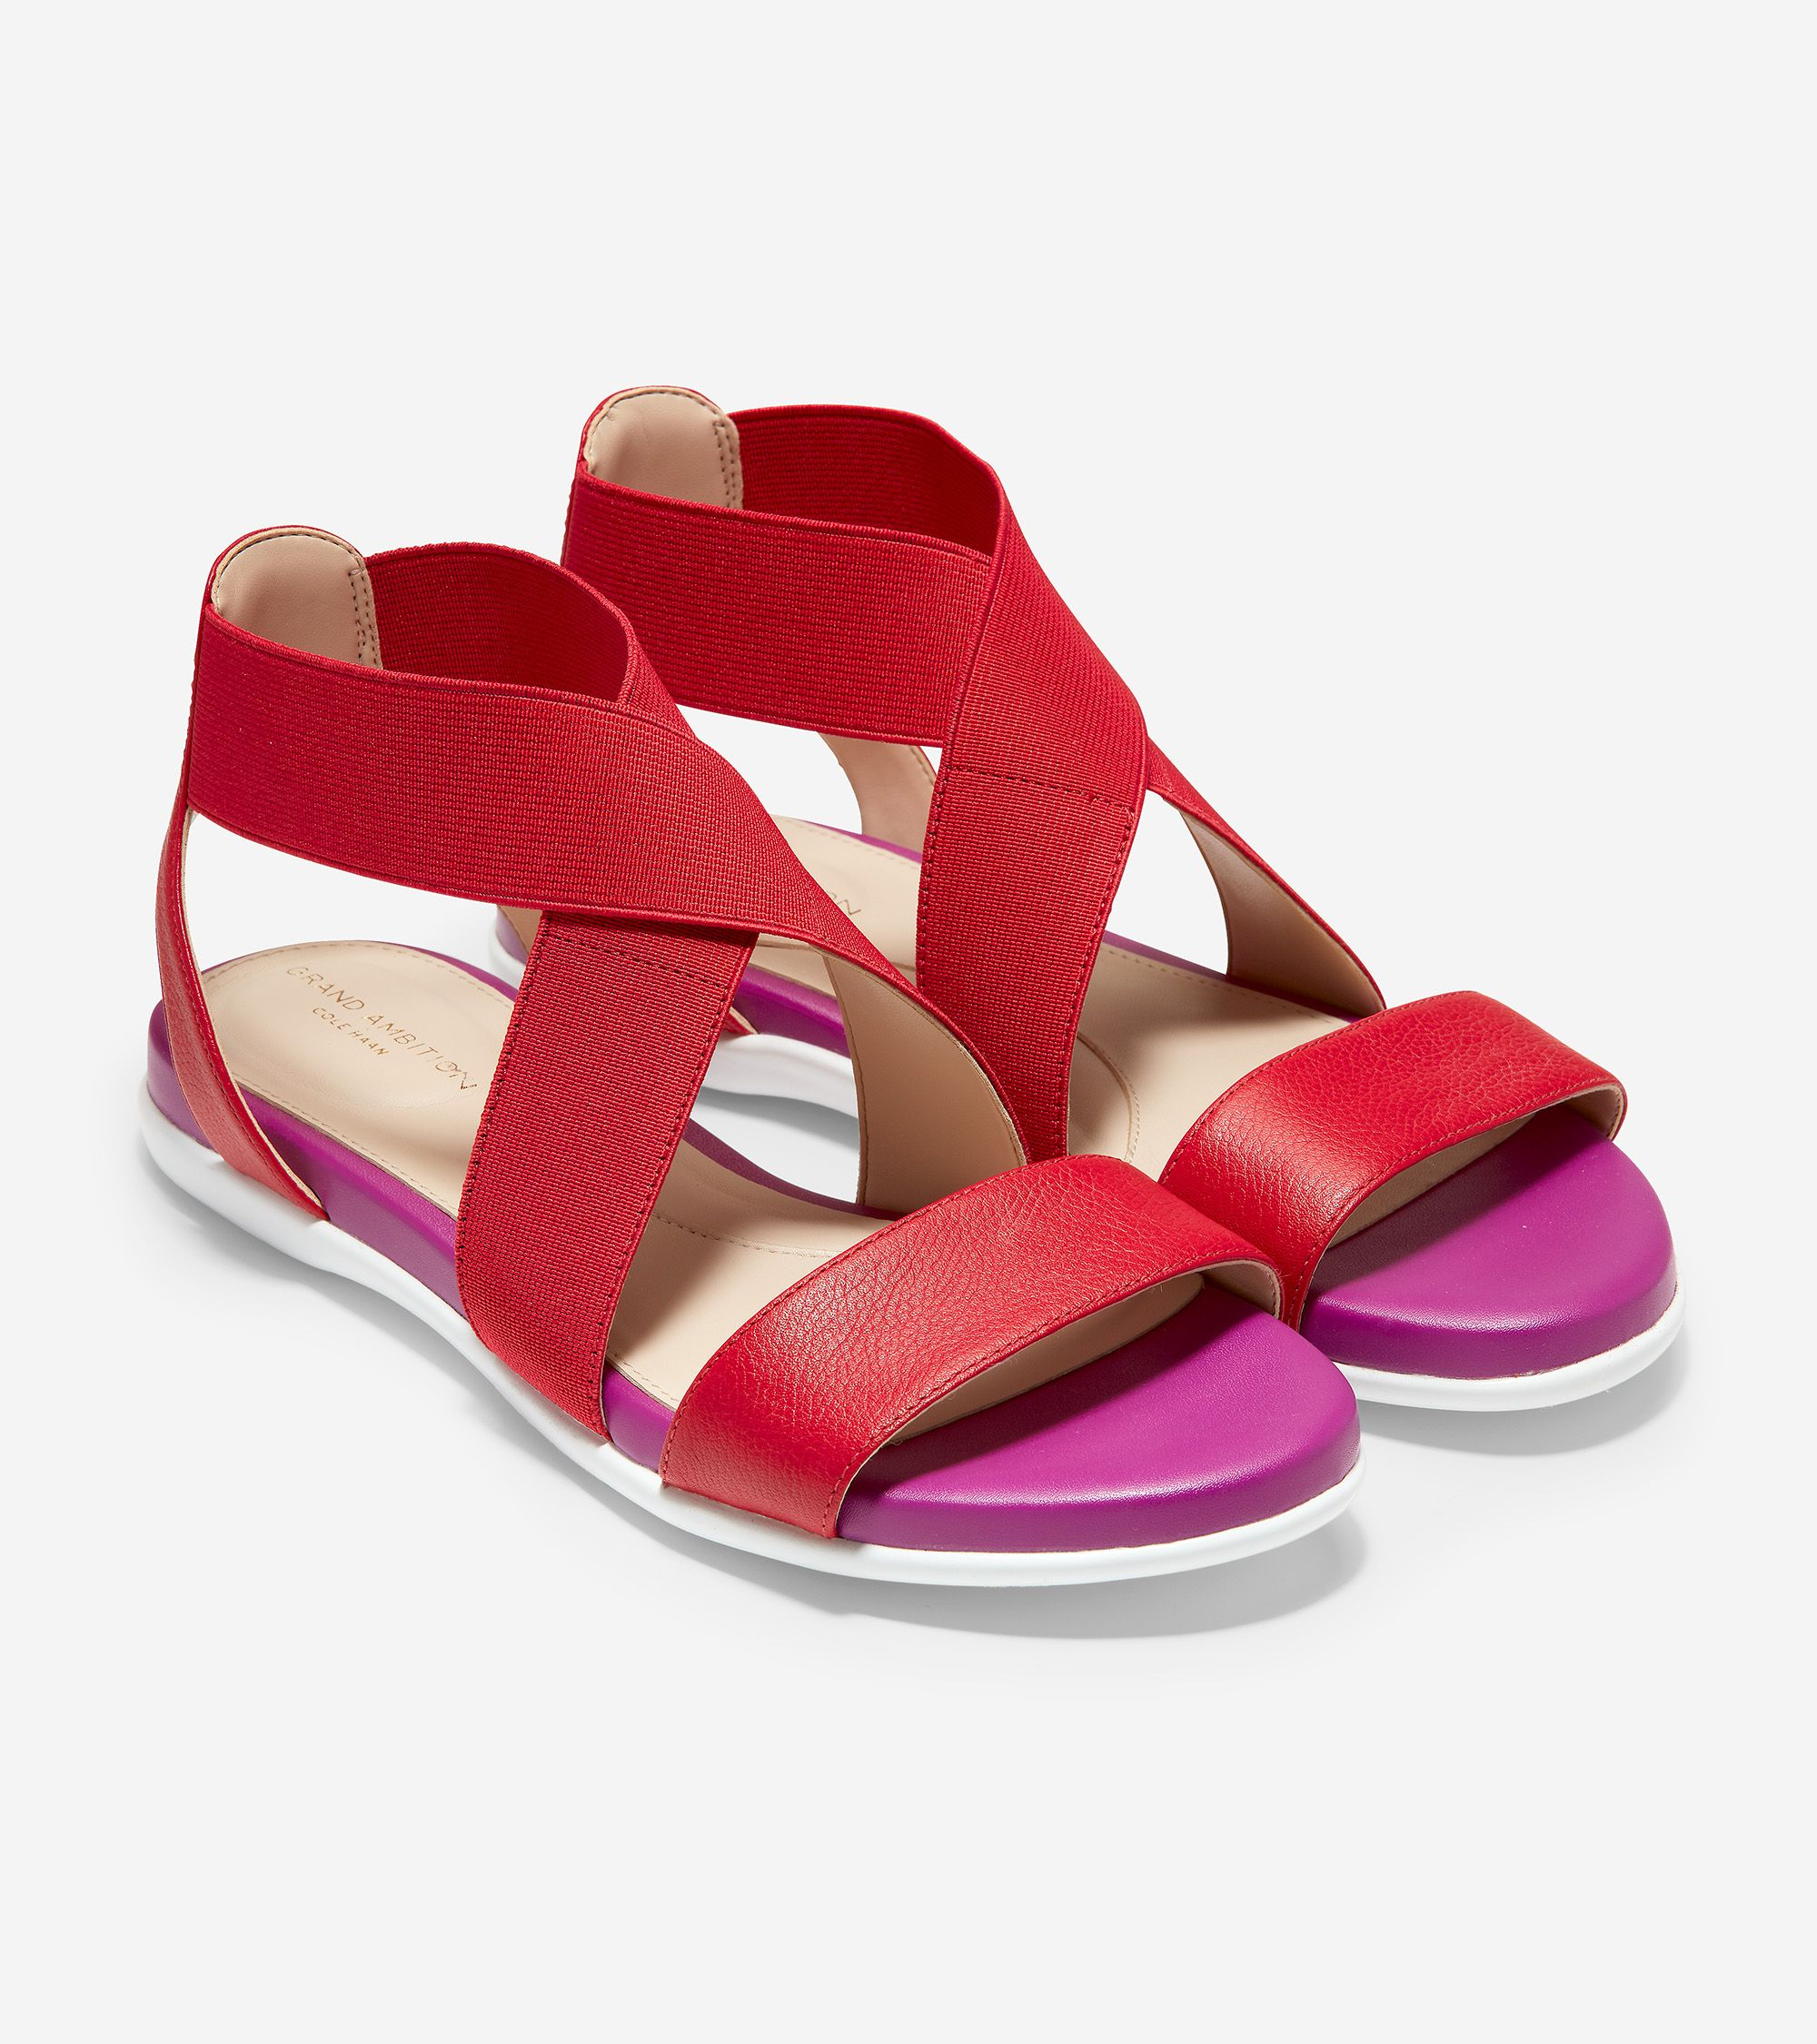 Women S Grand Ambition Elastic Sandal In Tango Leather Fuschia Leather In 2020 Elastic Sandals Elastic Sandals Woman Leather